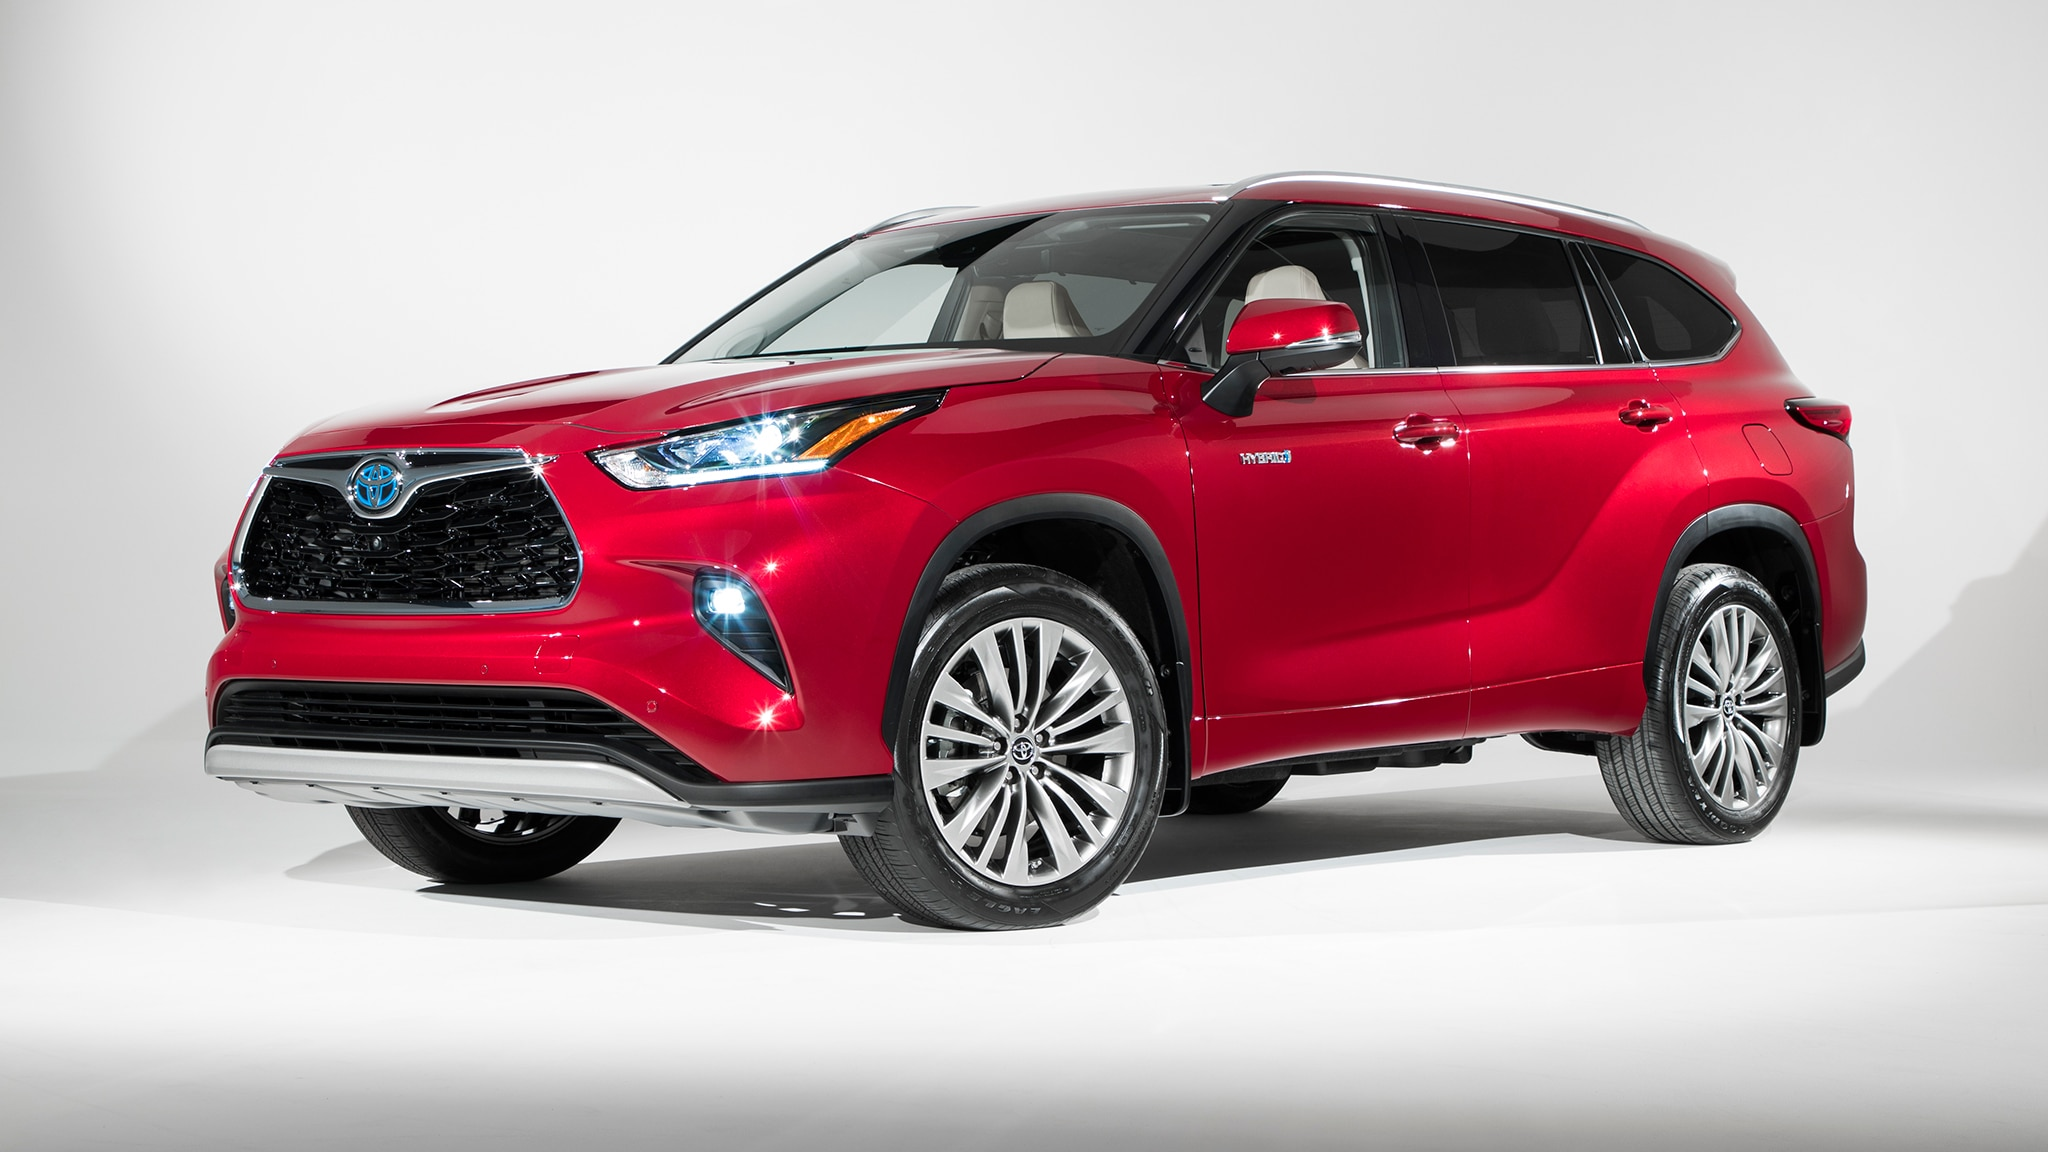 Toyota Highlander as well Maxresdefault moreover Toyota Rush Indonesia as well Toyota Highlander together with Subaru Forrester X. on 2019 toyota highlander colors